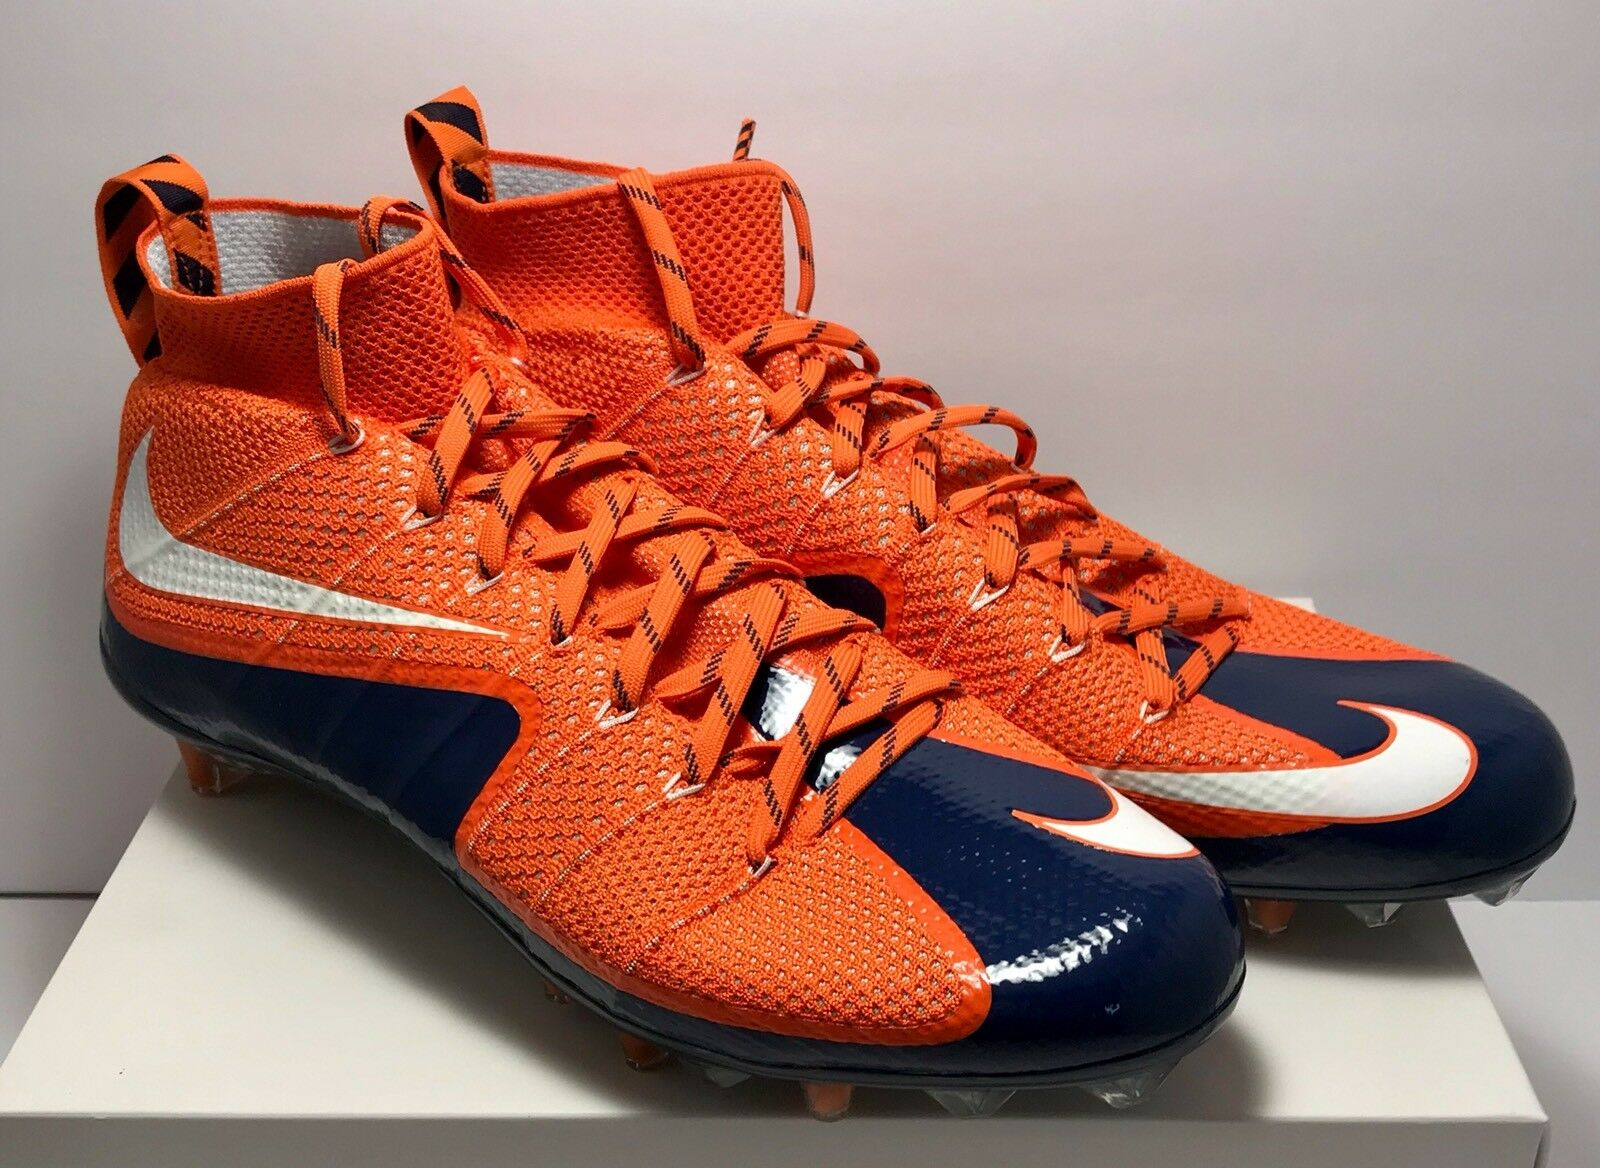 Nike Mens Size 15 Untouchable 1 Football Cleats orange blueee New Rare  200